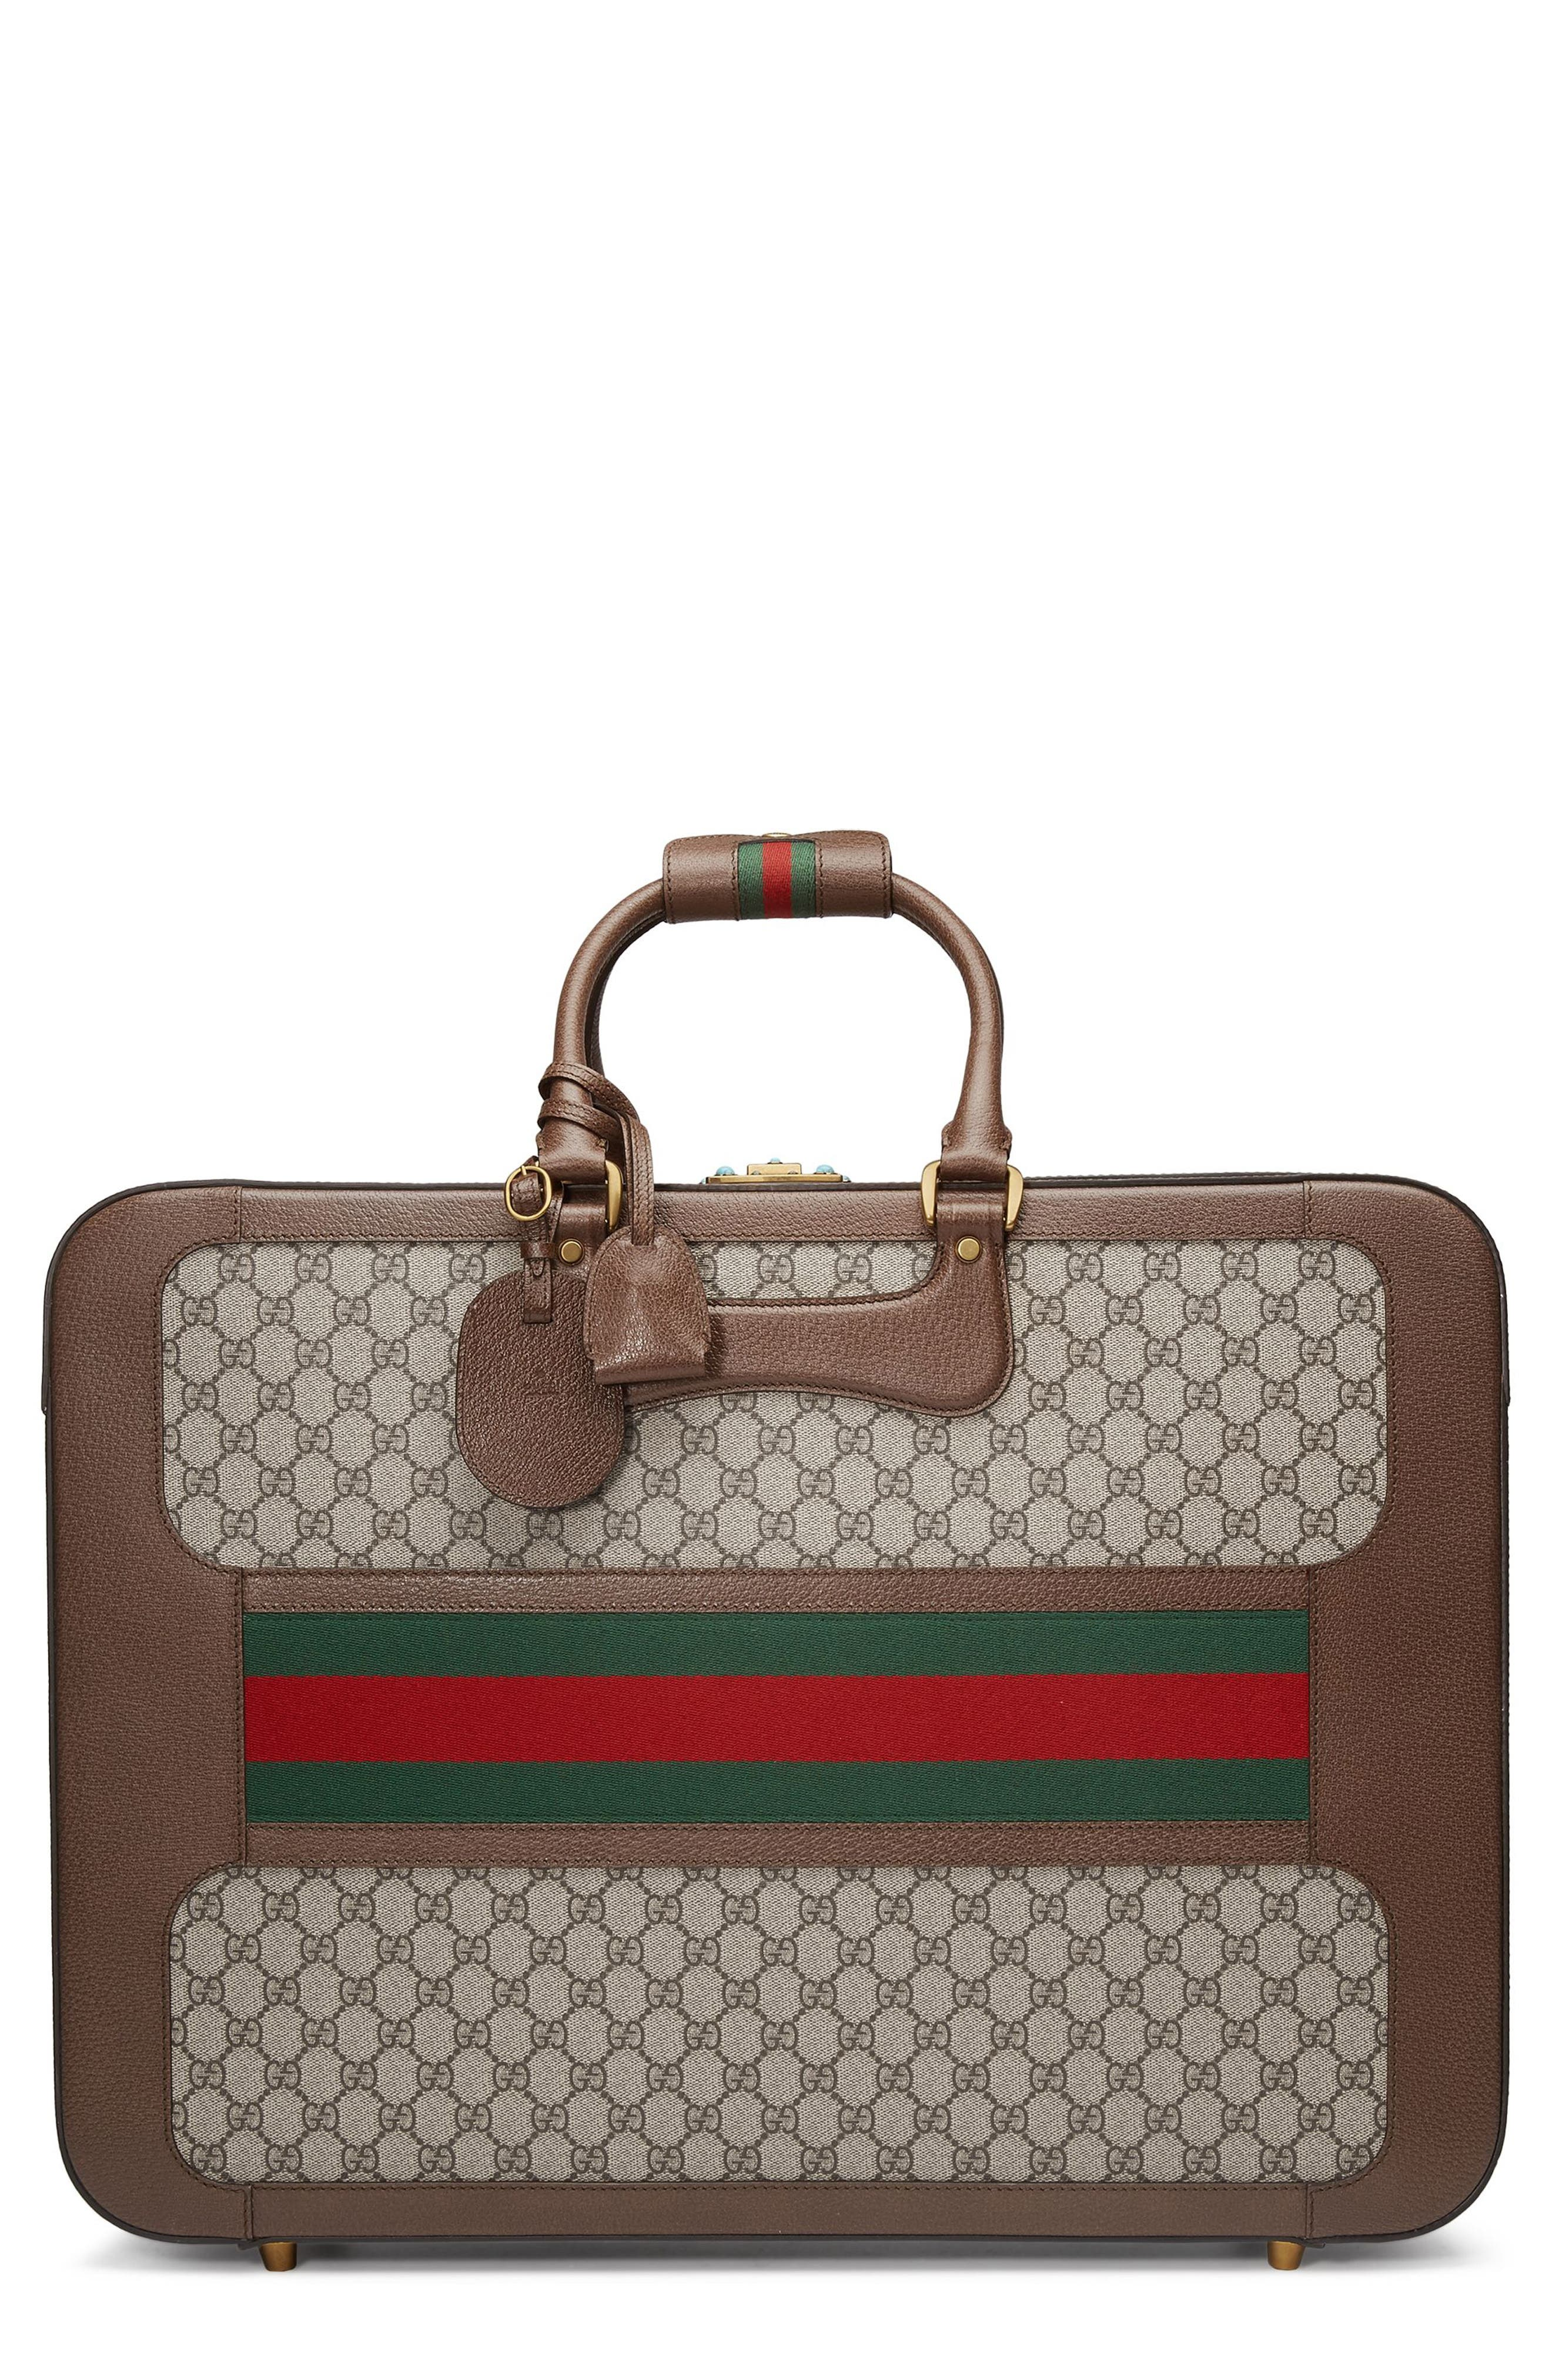 gucci bags at nordstrom. gucci large echo gg supreme canvas \u0026 leather suitcase bags at nordstrom u